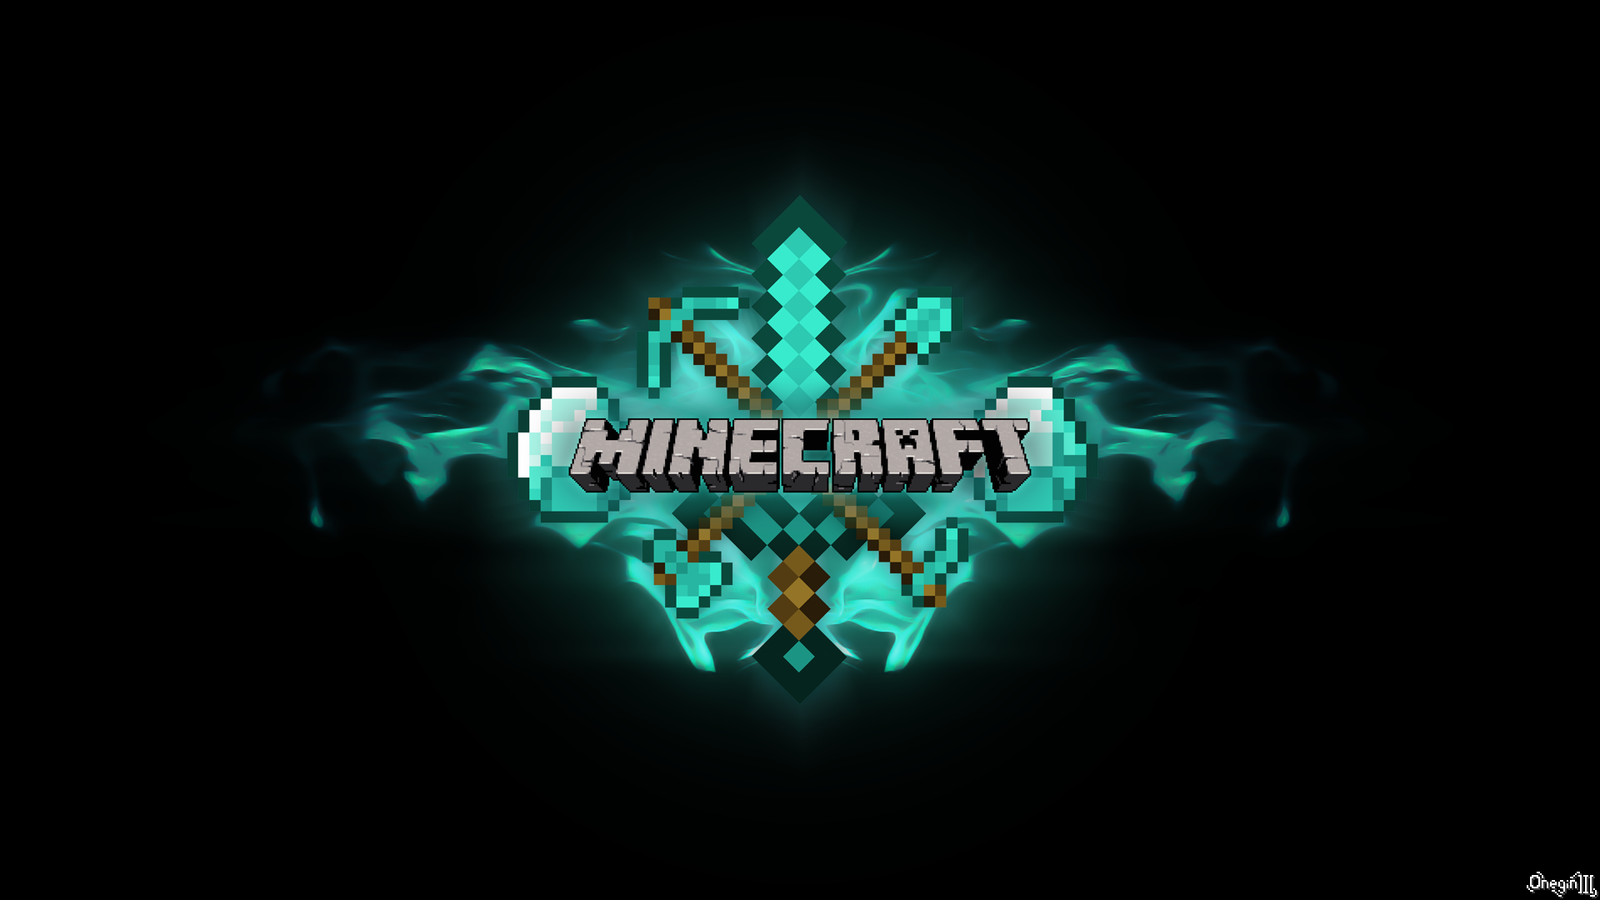 Minecraft wallpaper. 🌱 [35+] Minecraft